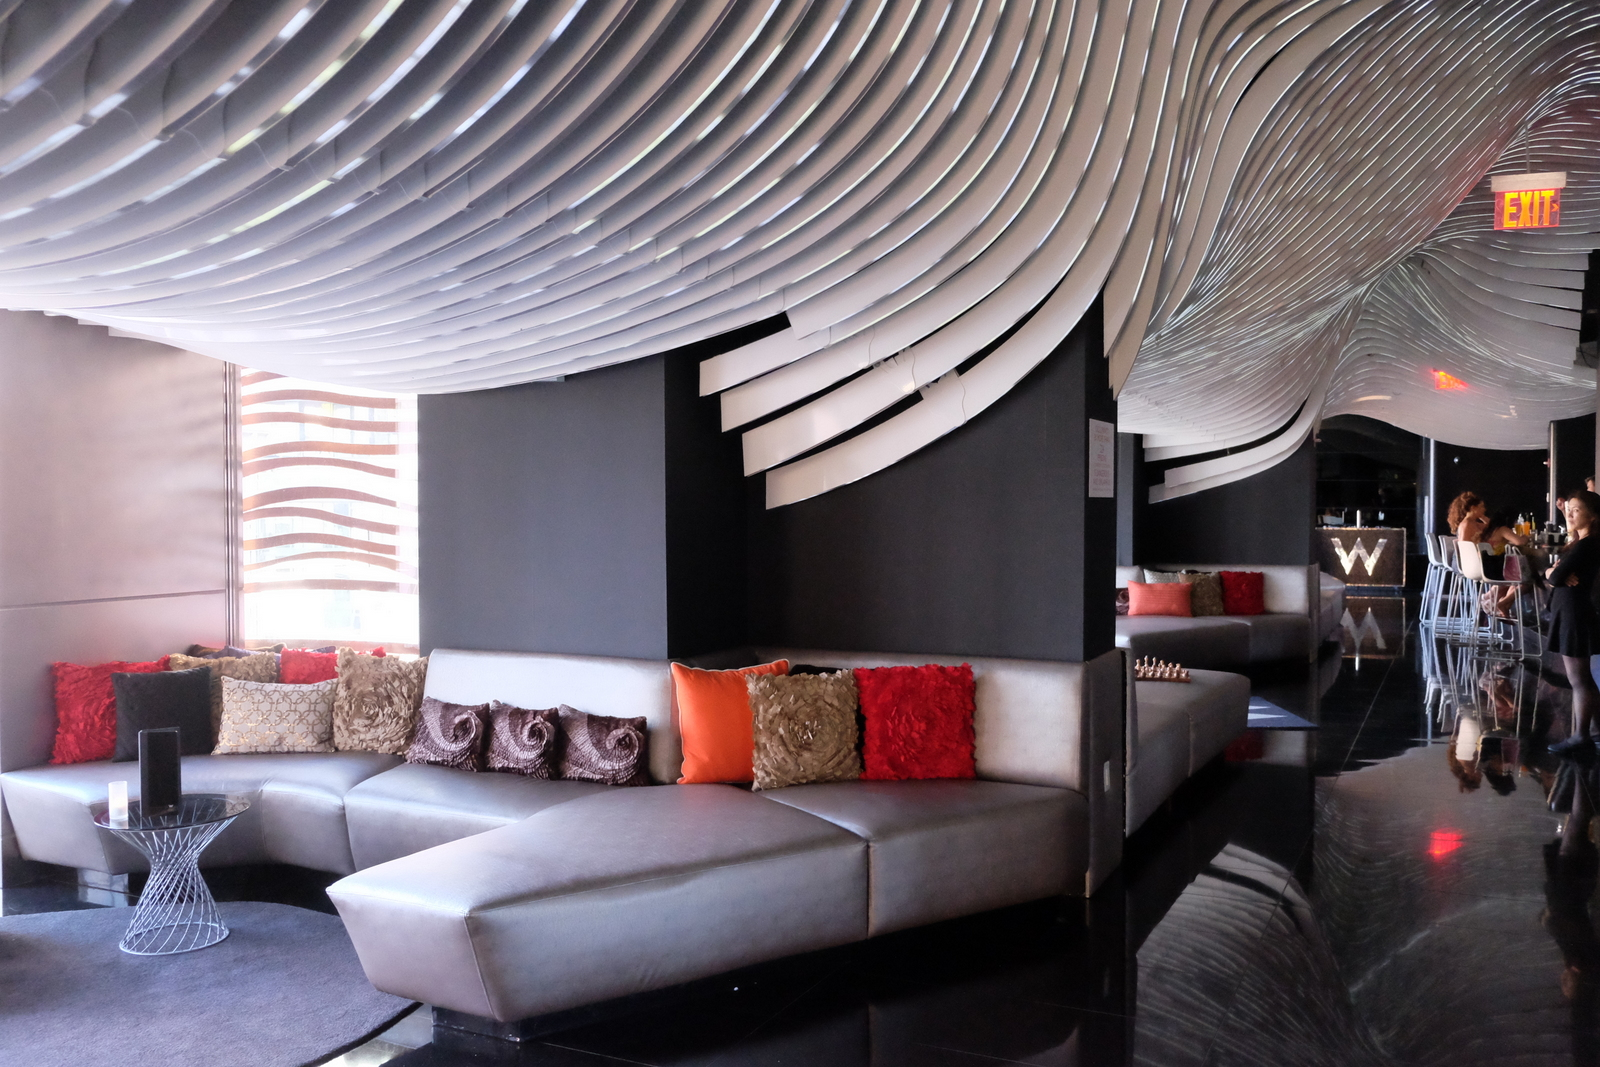 The W Hotel Downtown in lower Manhattan features sleek, modern decor and a great outdoor bar with wonderful views. JIM BYERS PHOTO